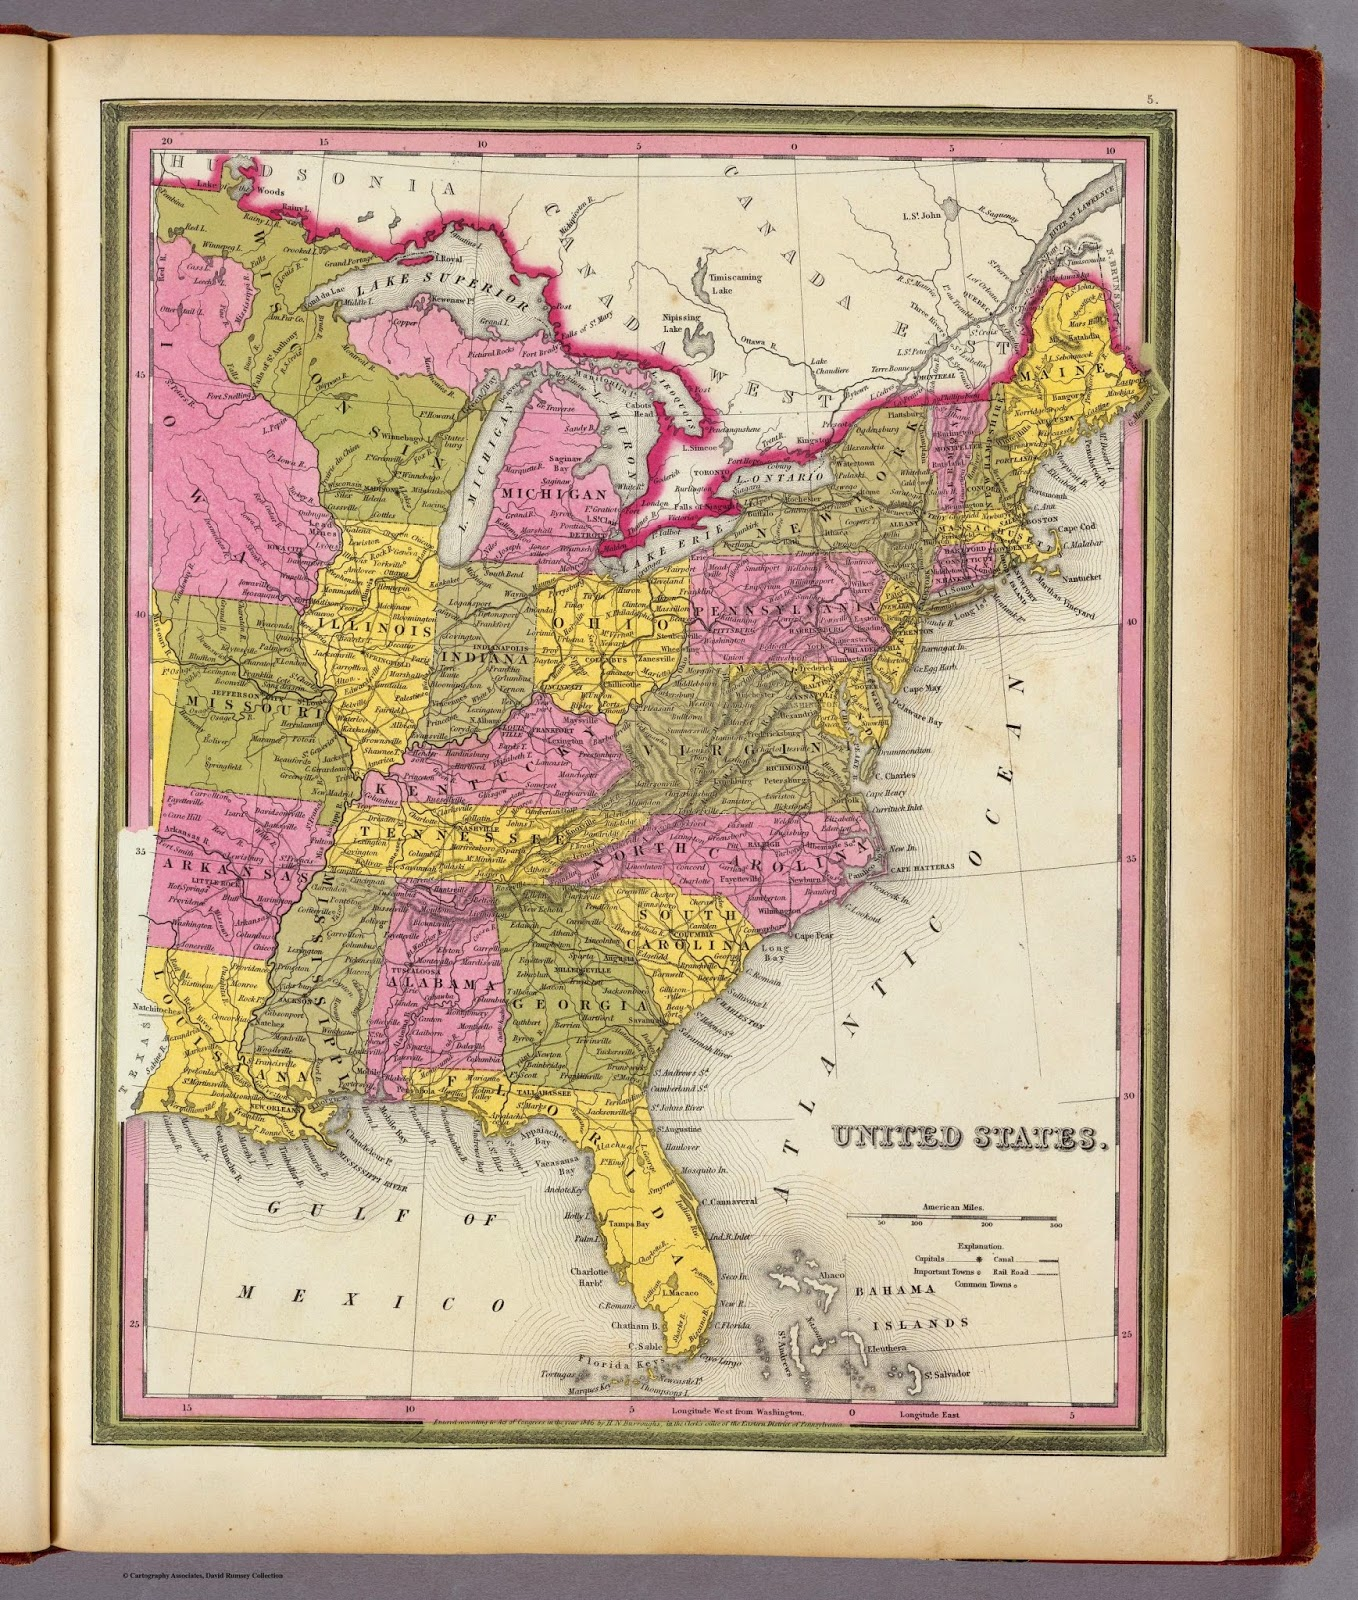 Genealogys Star Online Digital Map Collections By State - Digital maps online